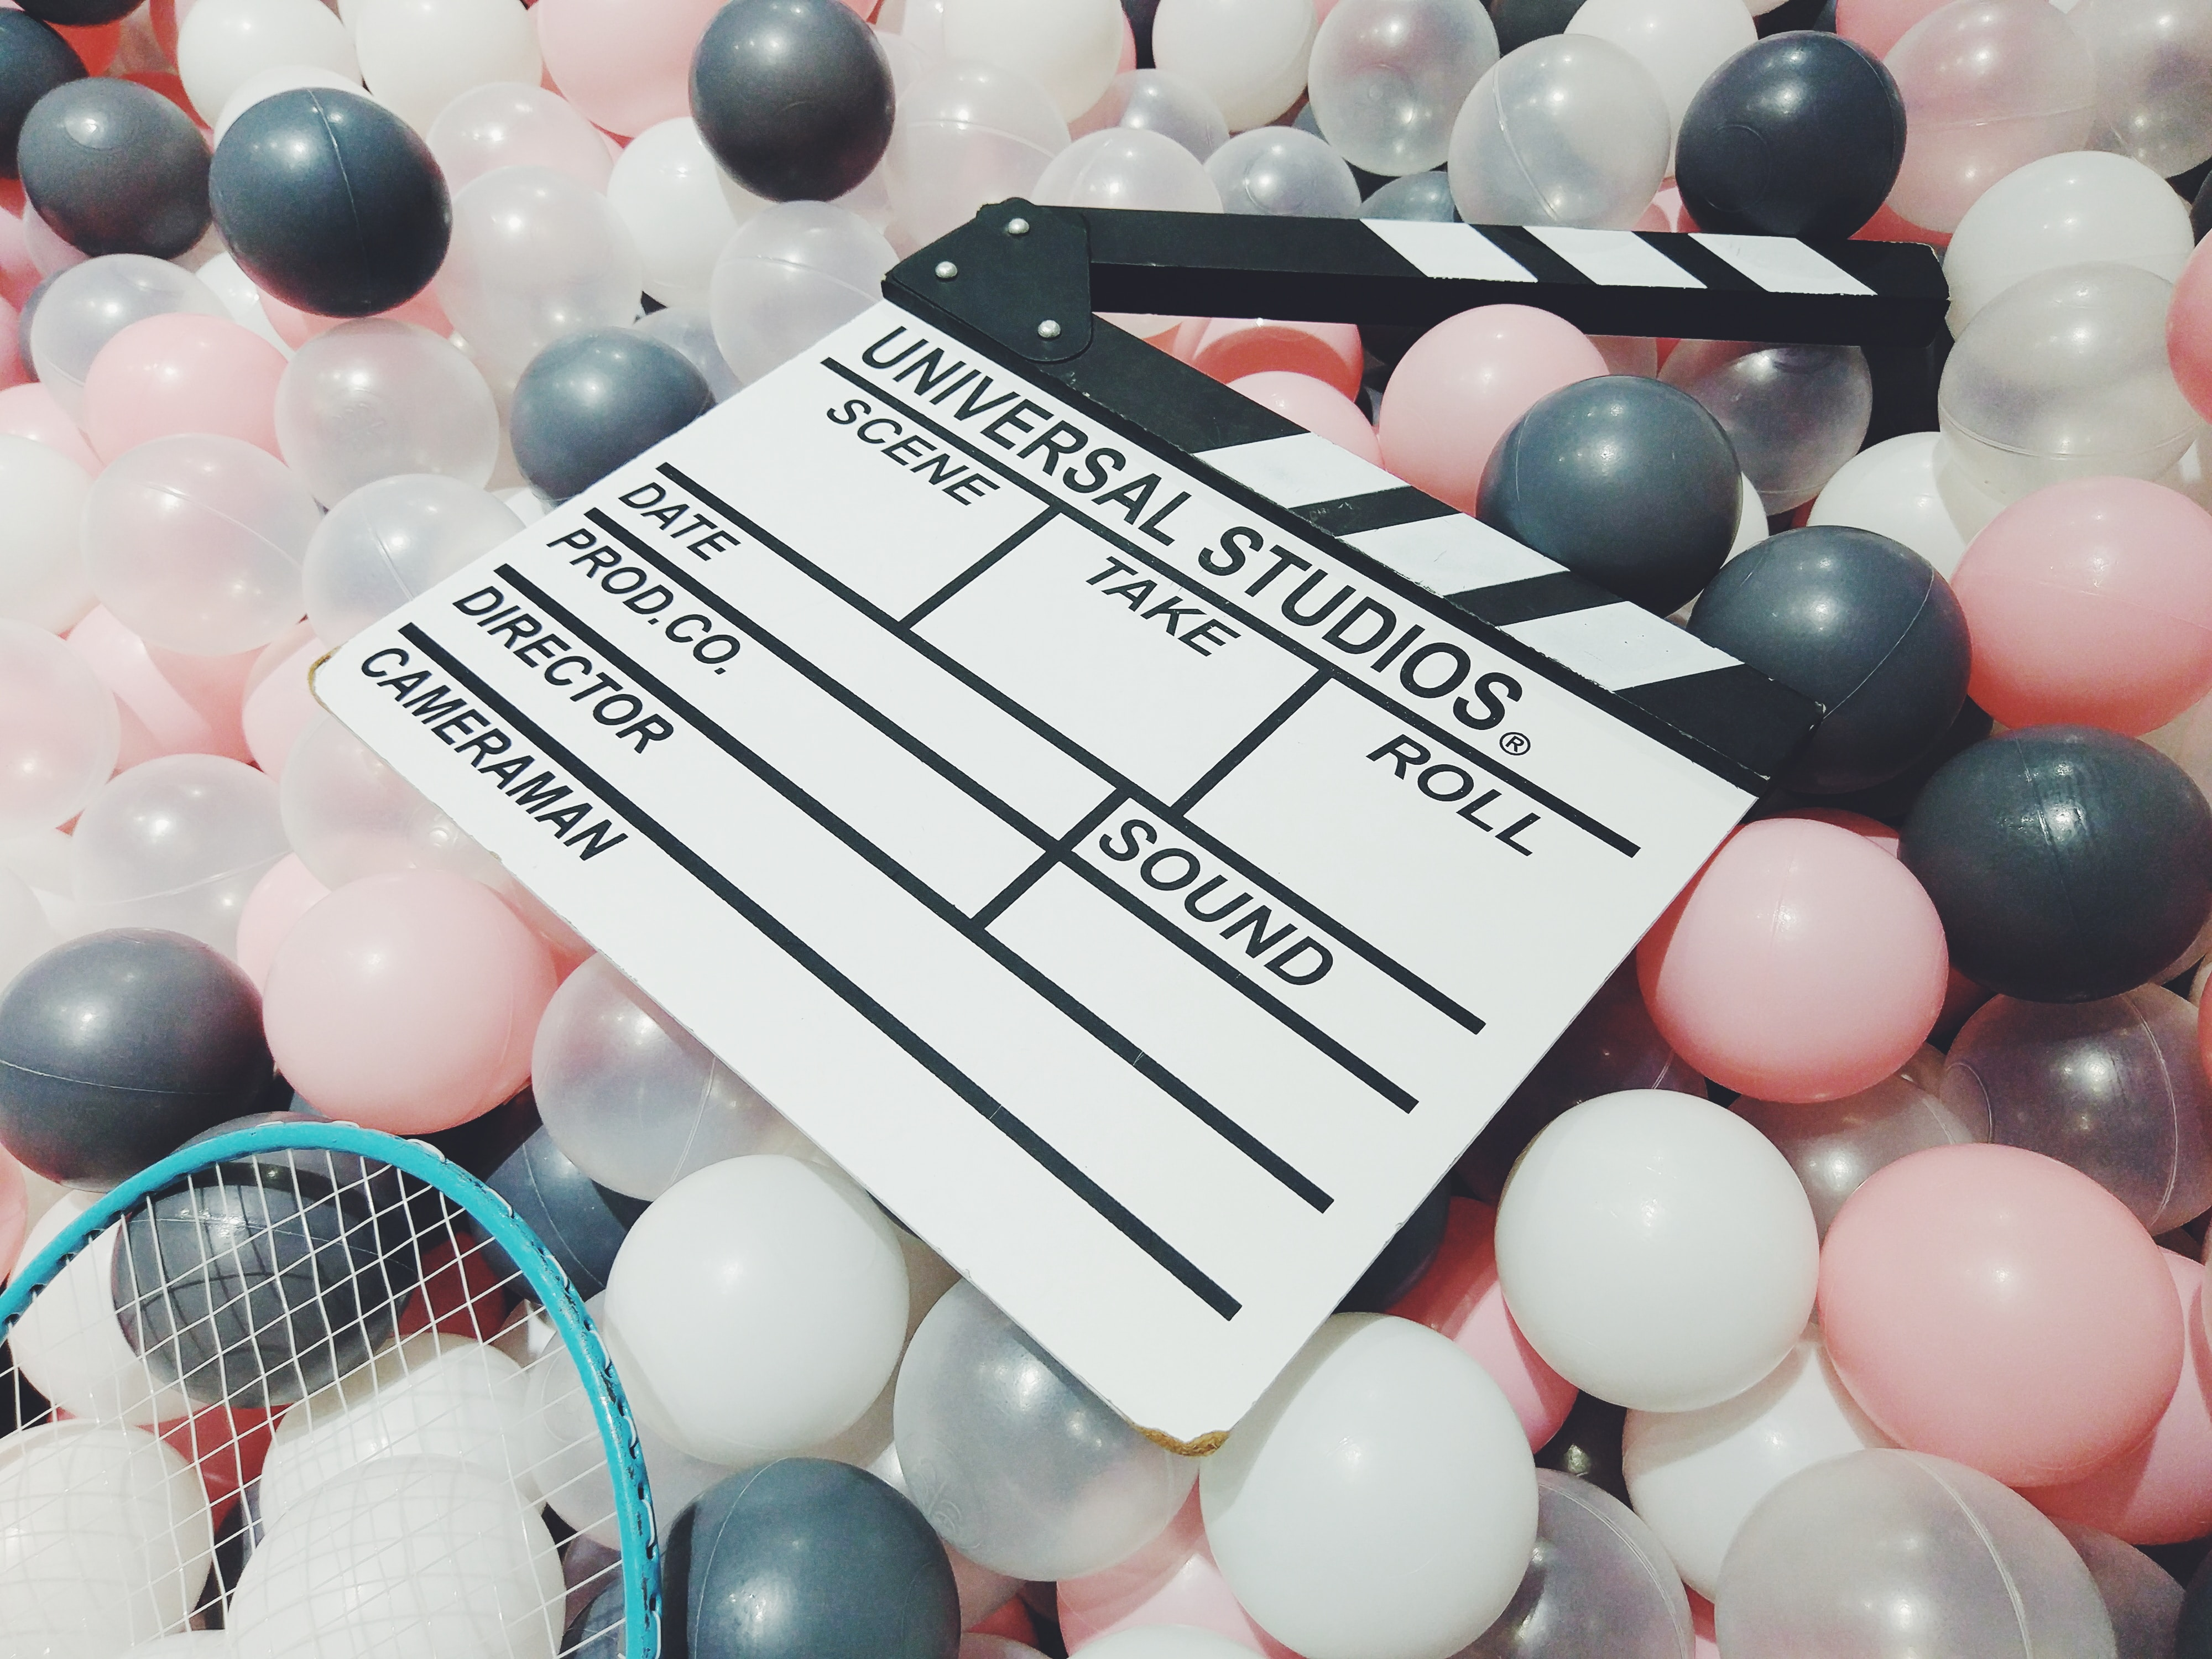 Using a Clapboard